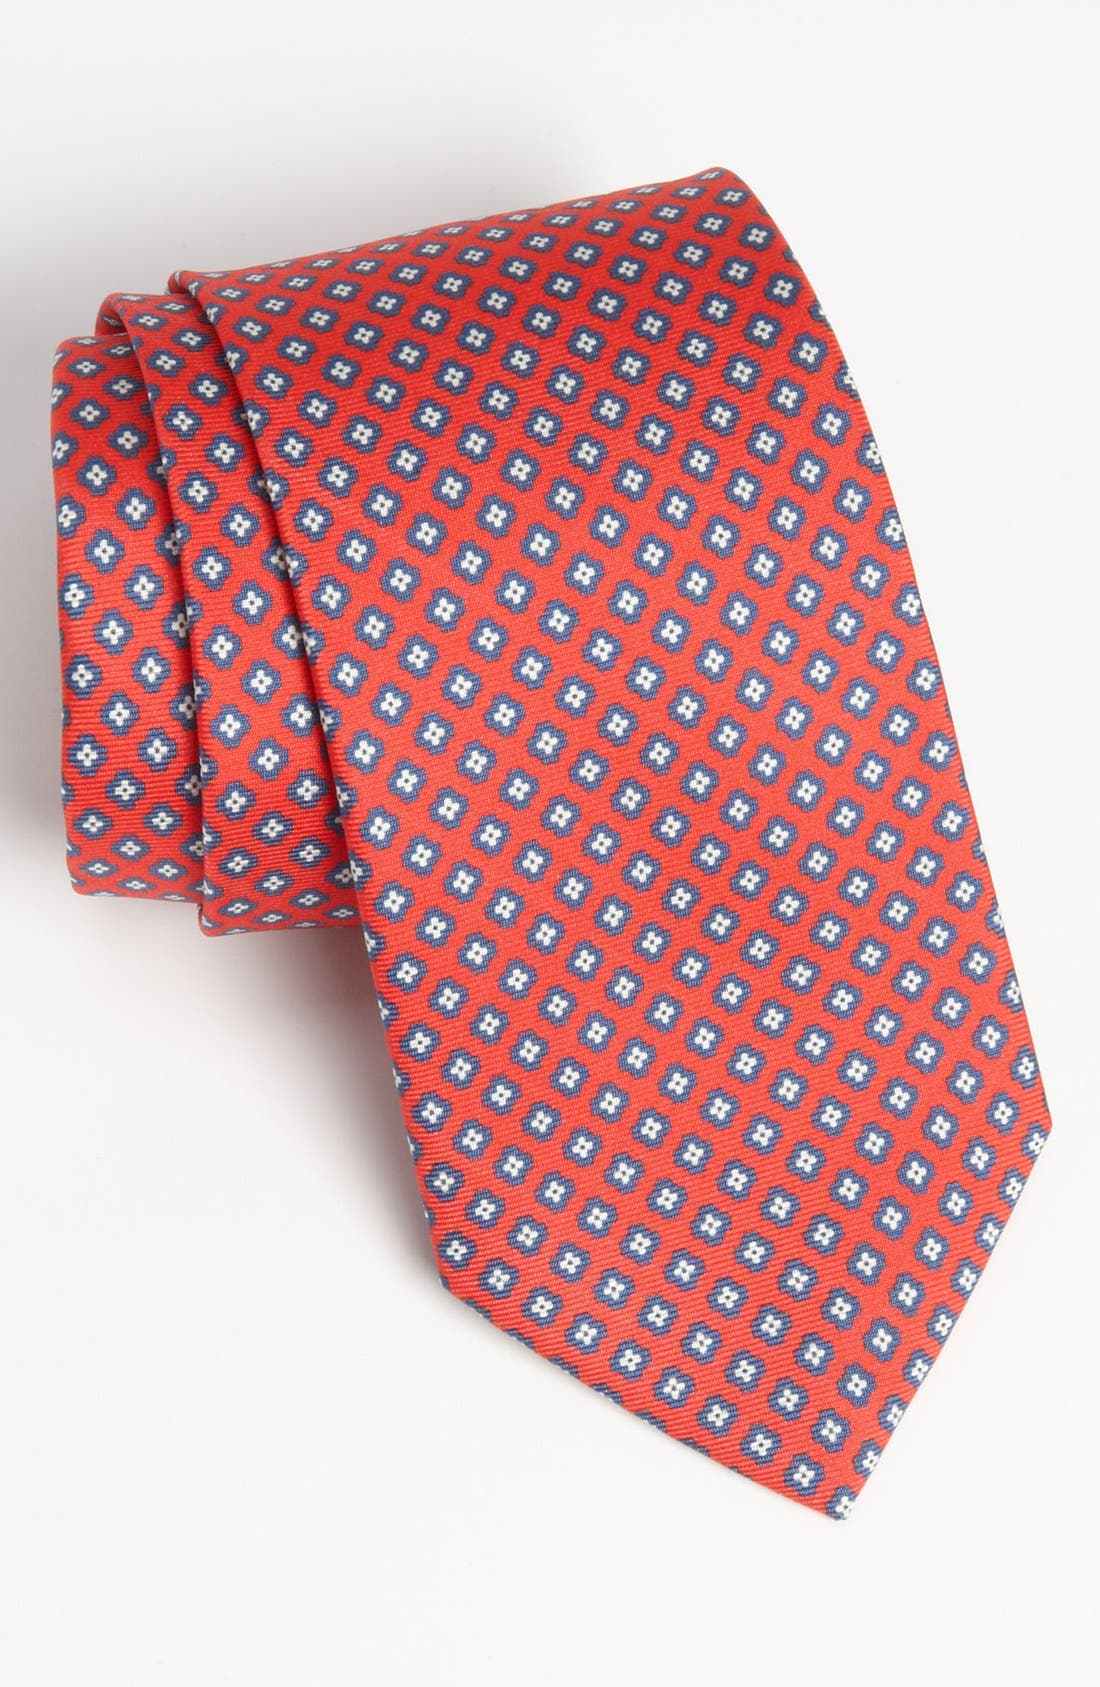 Alternate Image 1 Selected - John W. Nordstrom® Print Silk Tie